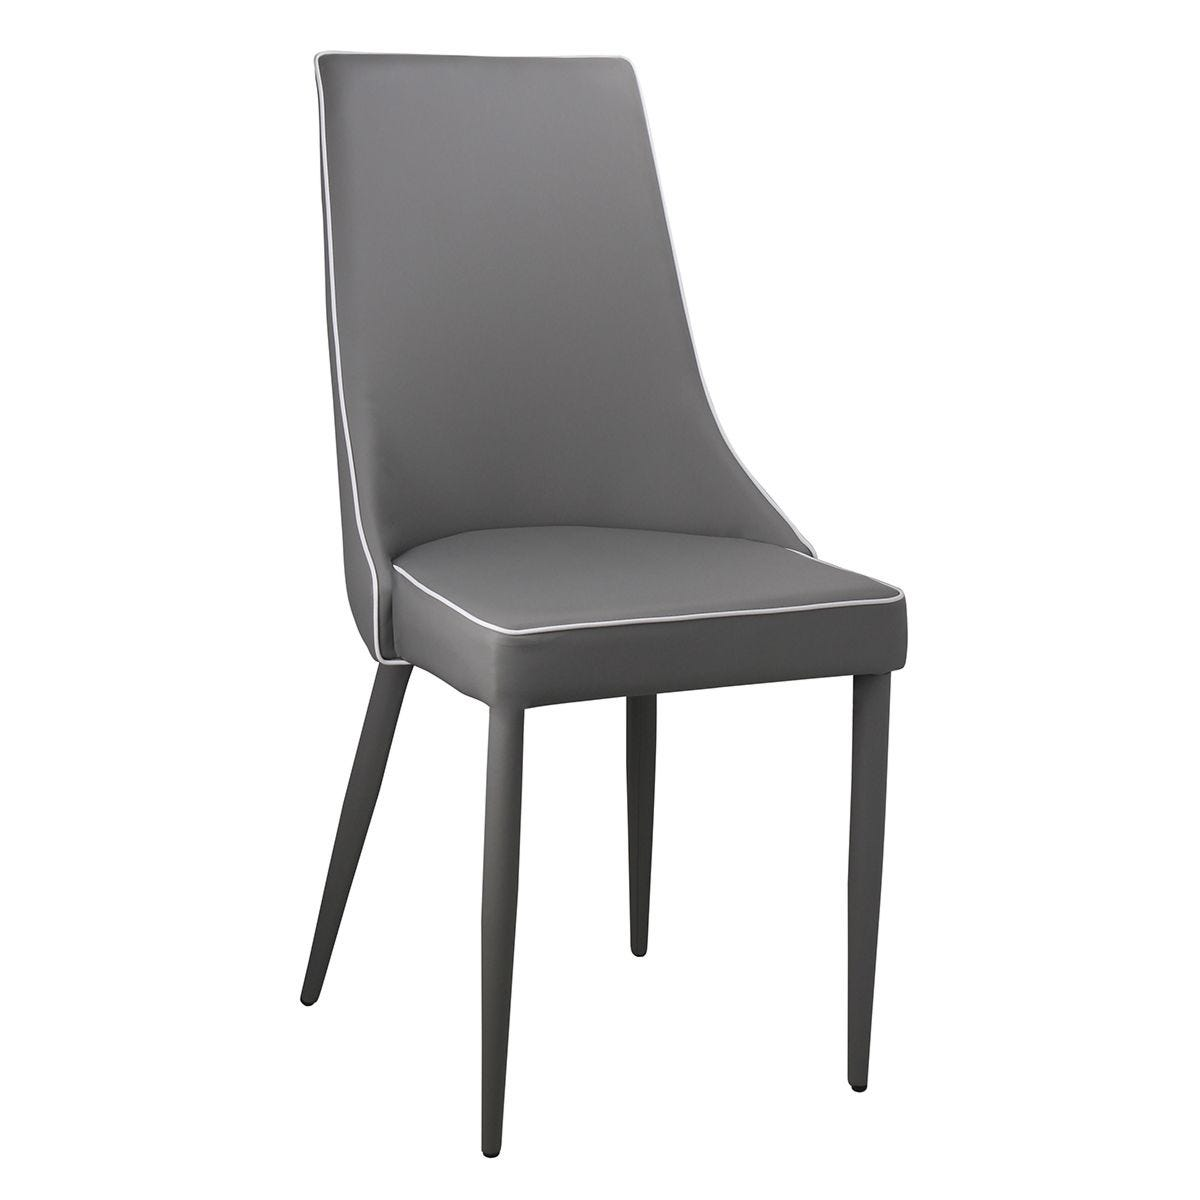 Set Of 4 Daisy Faux Leather Chairs Metal Legs - Grey